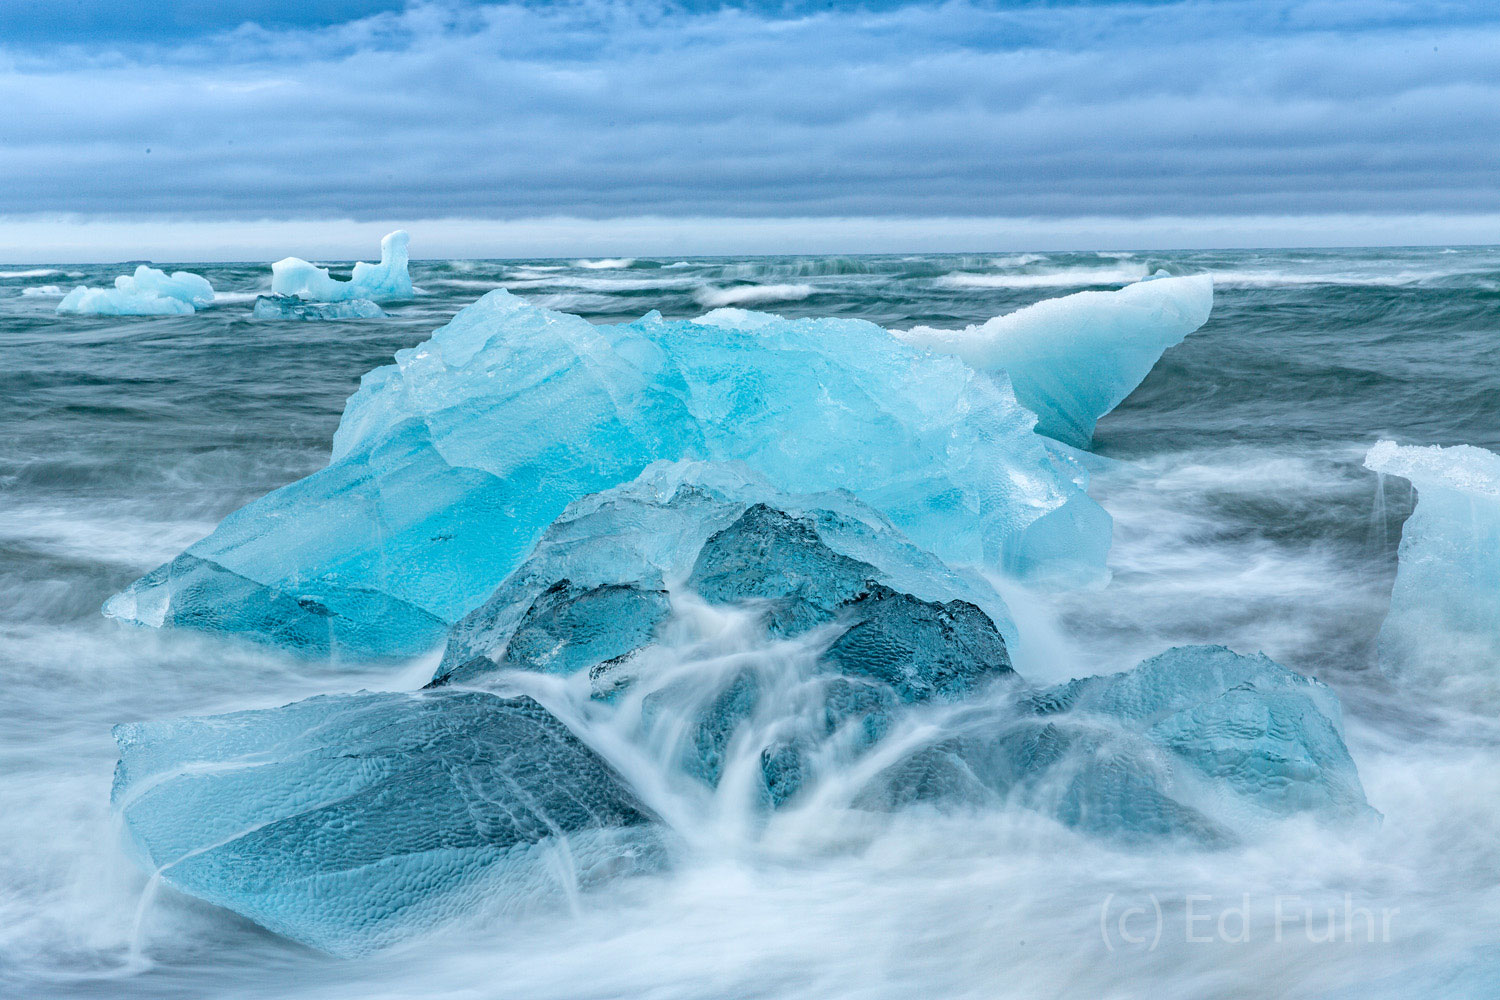 Seemingly defiant, this large blue ice - like some valuable jewel - seems timeless and essential, but the waves and the salt...